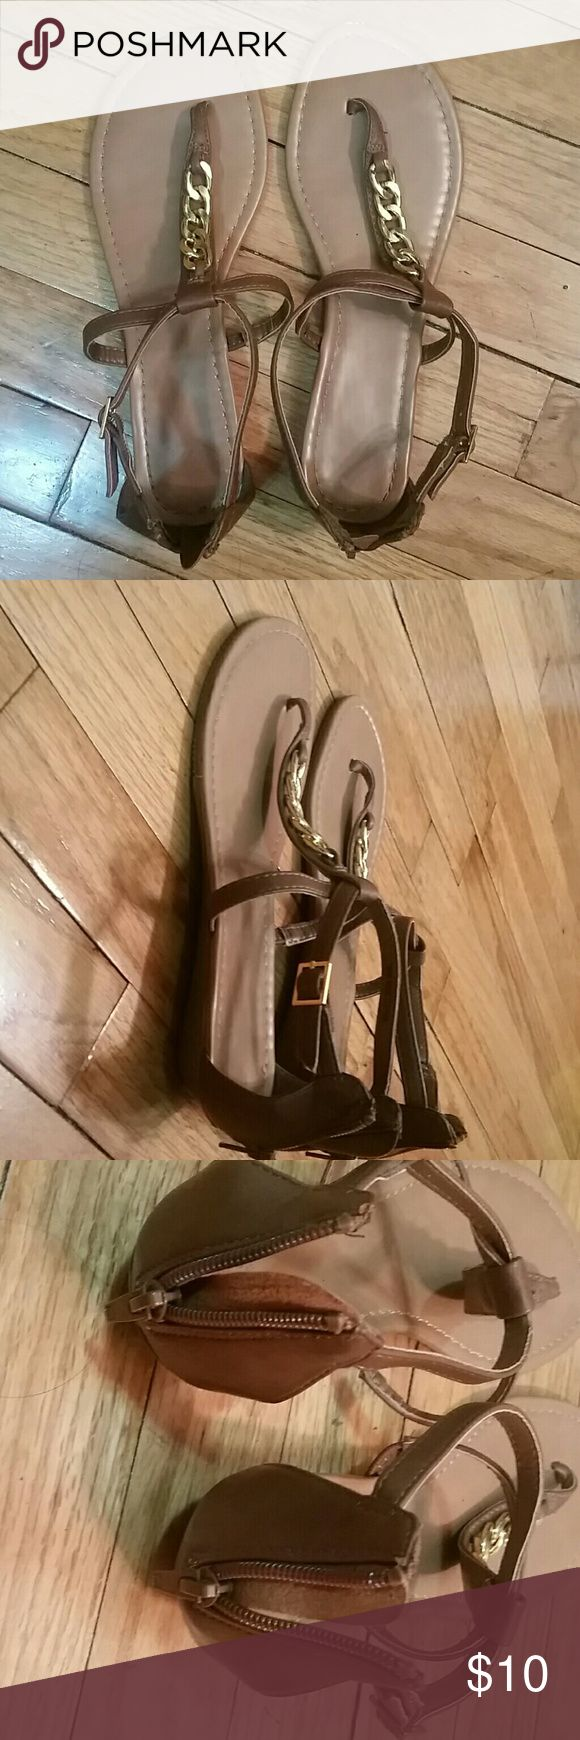 15 Must See Tan Sandals Outfit Pins Tan Sandals Preppy